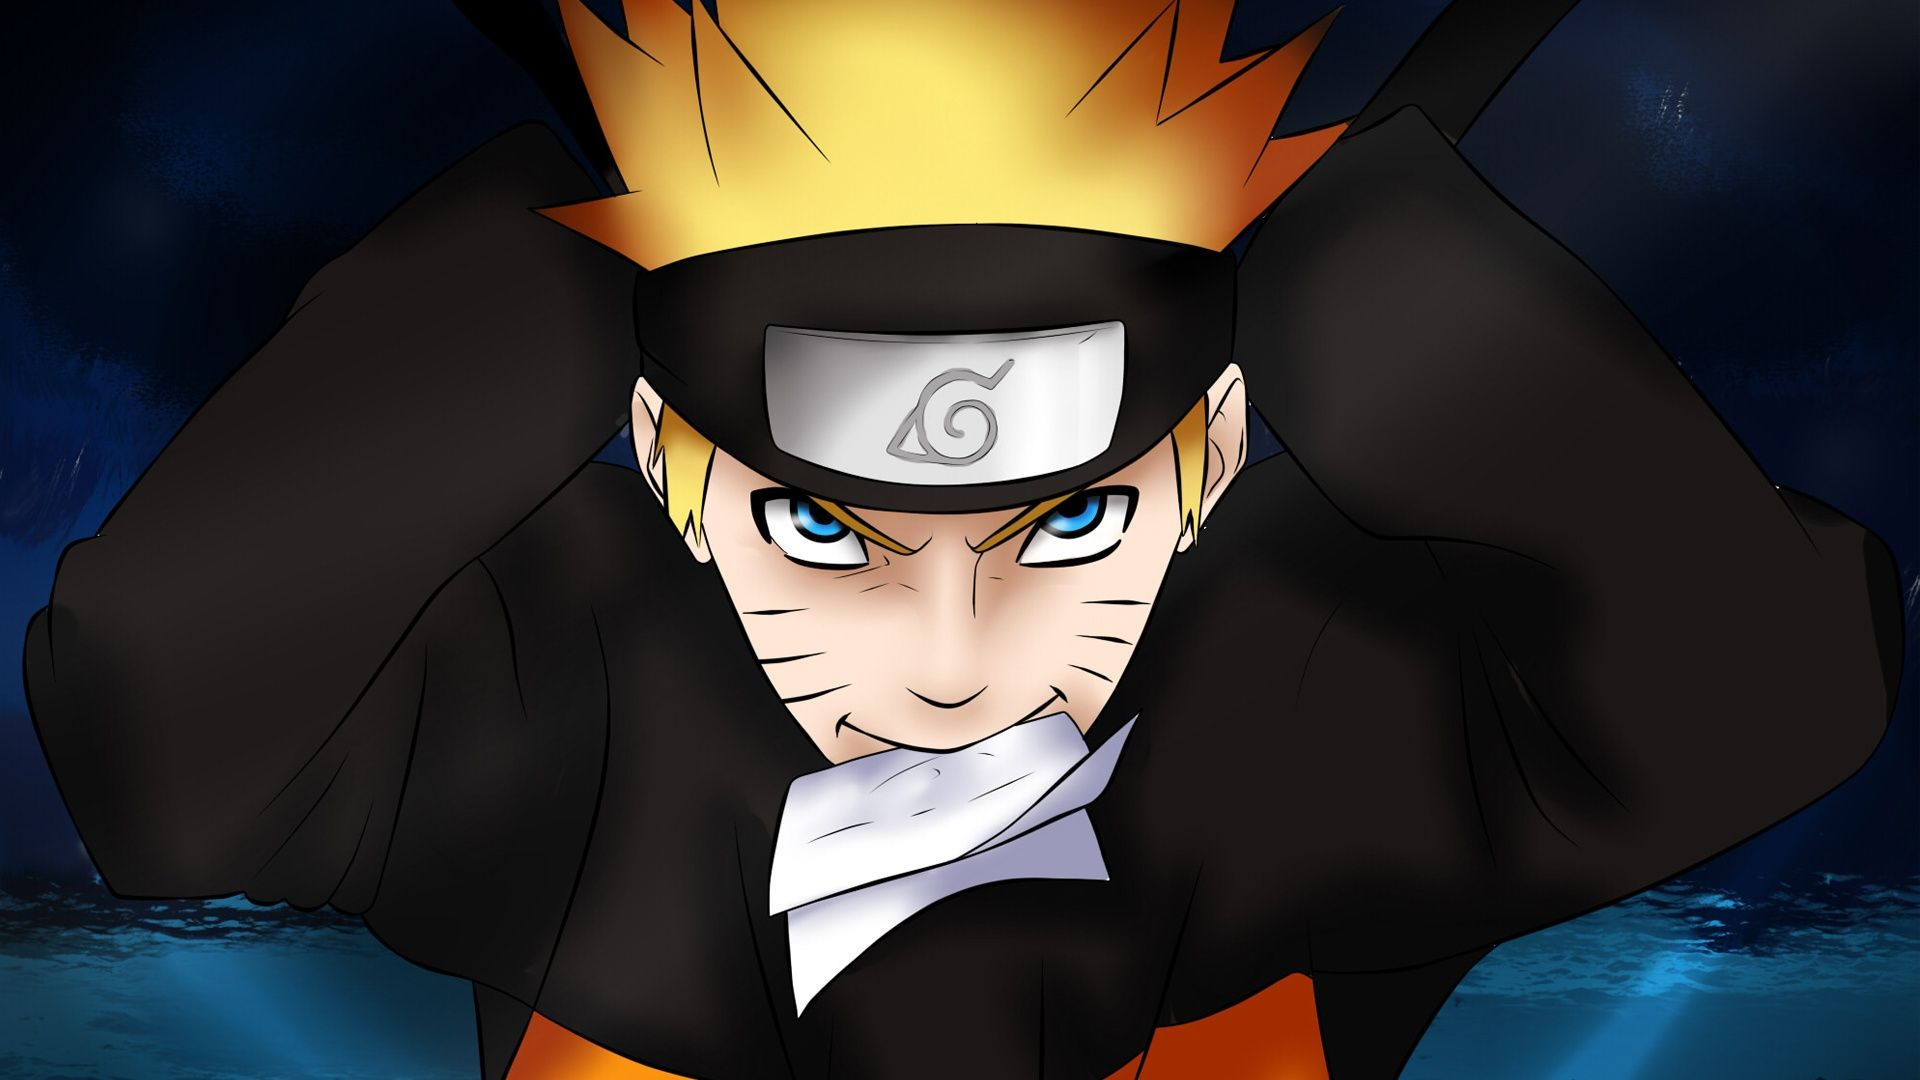 naruto hd wallpapers naruto wallpapers and backgrounds and download them on all your